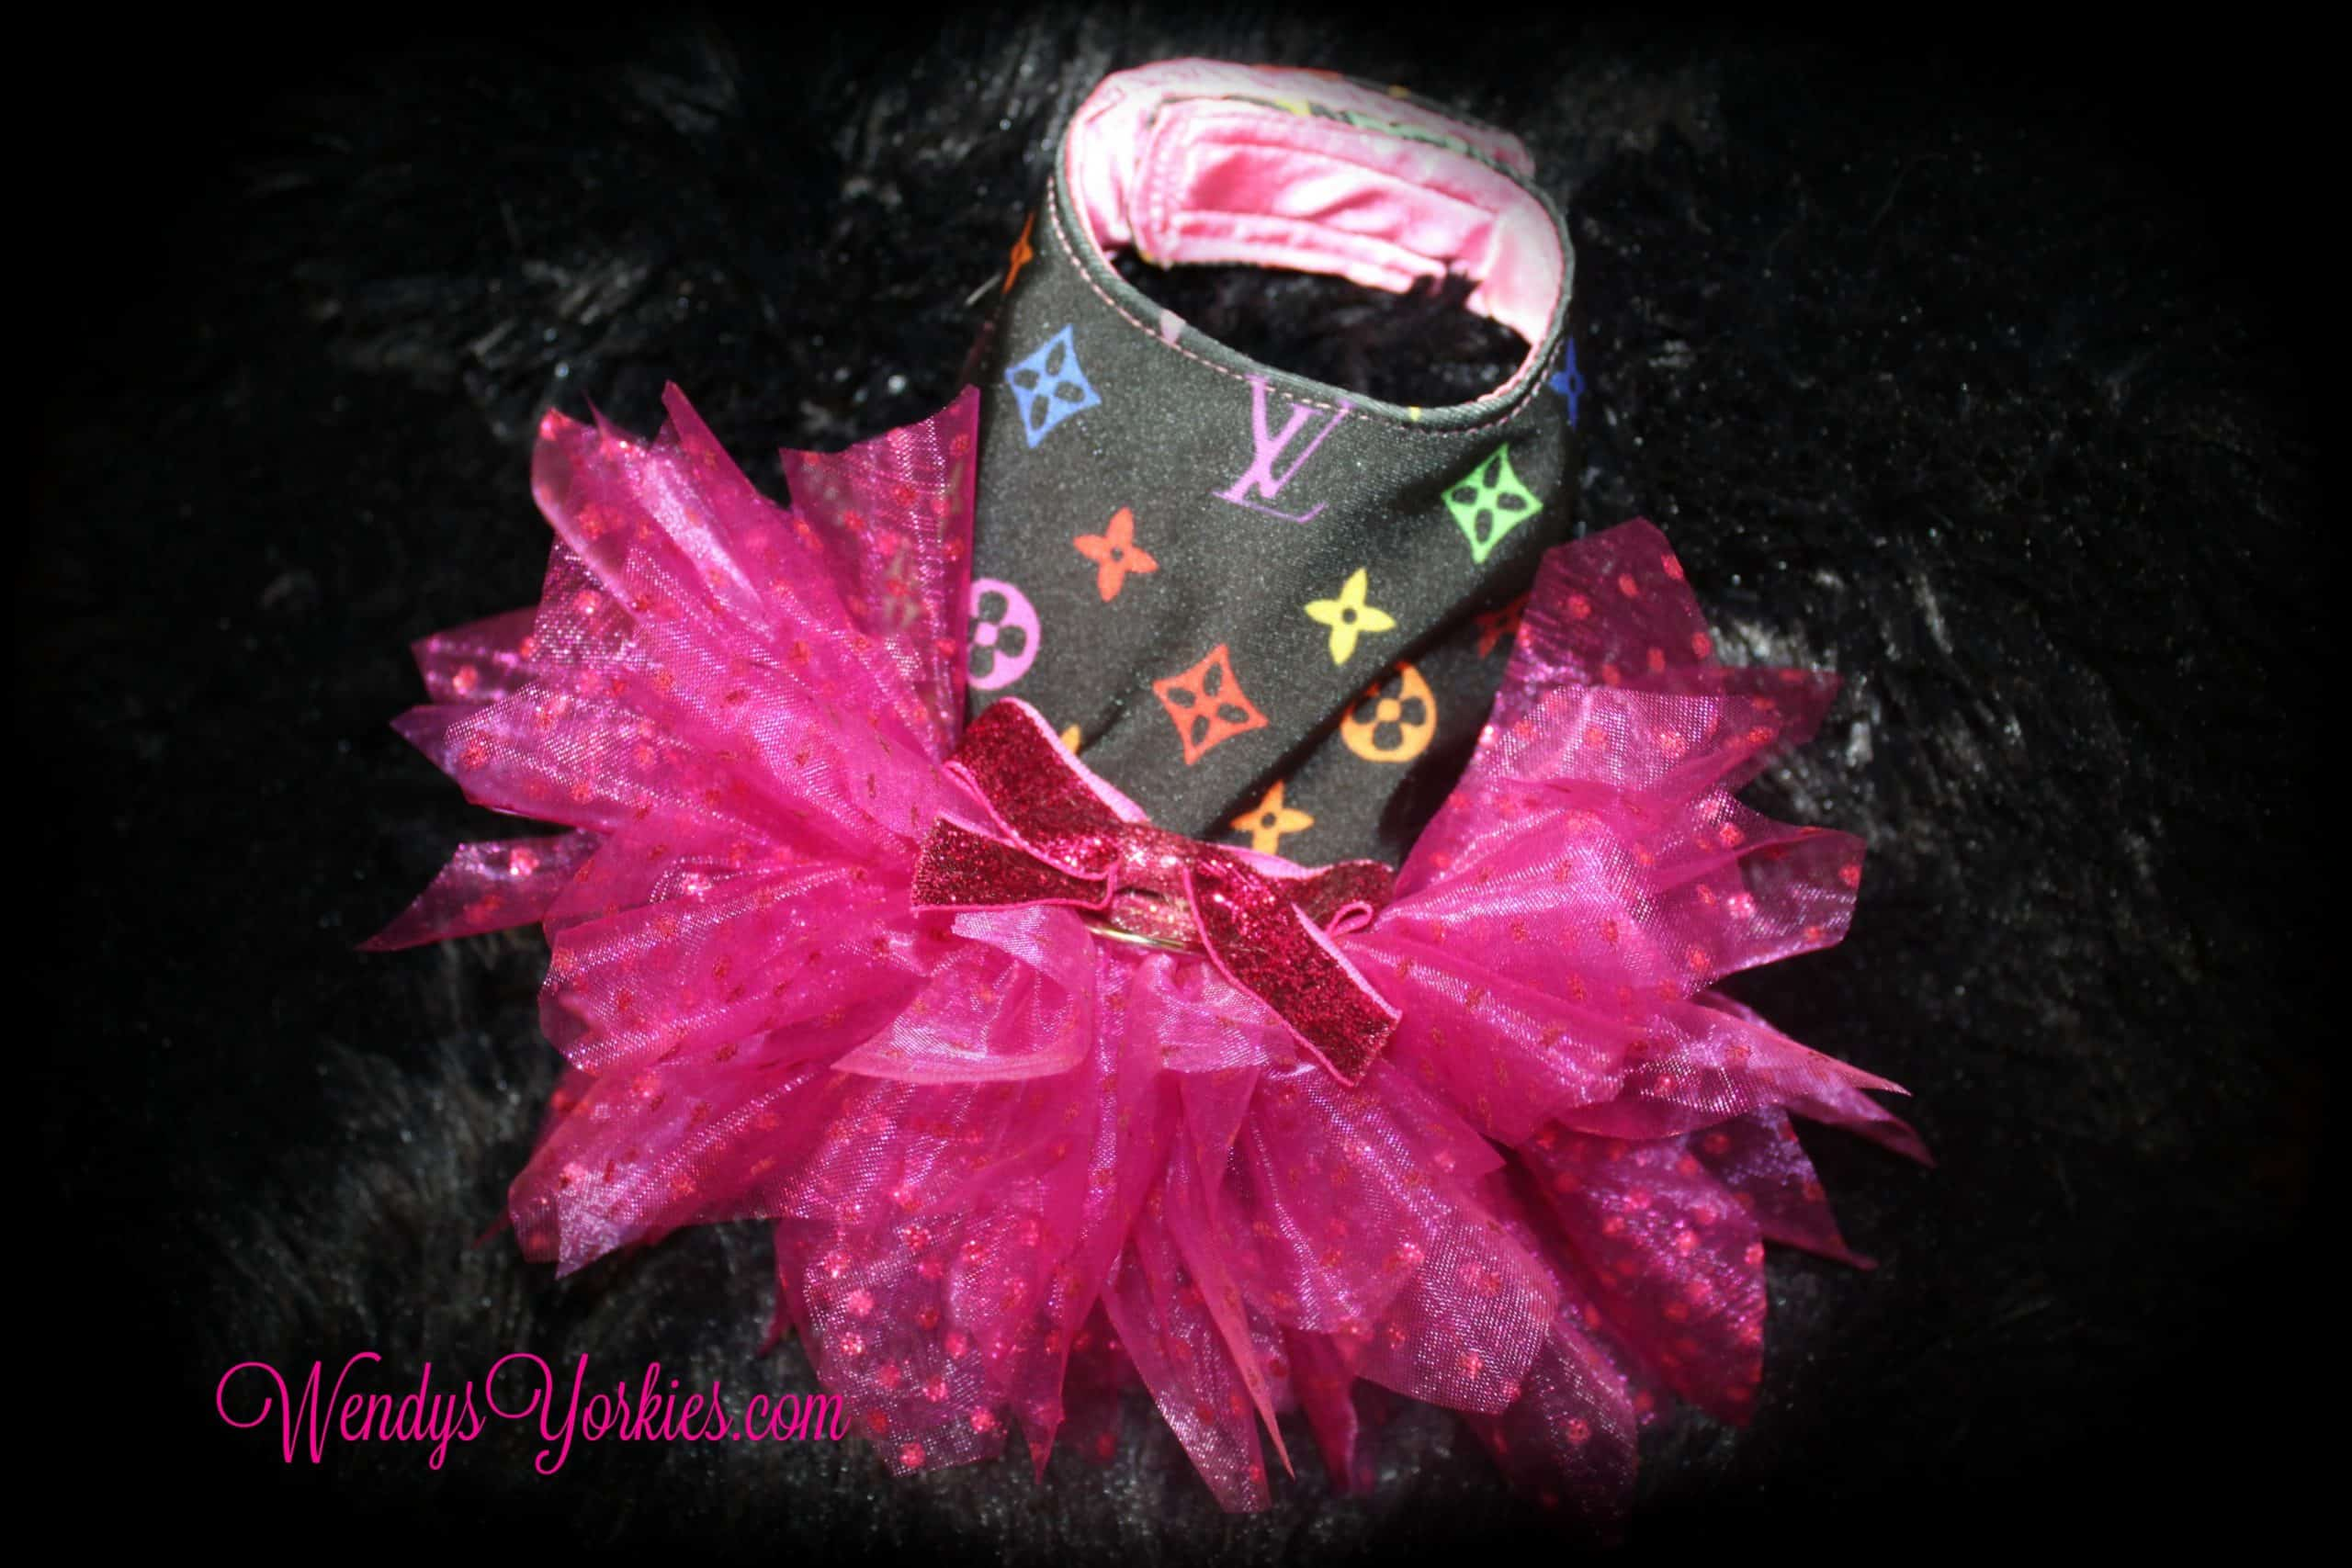 Pink LV Pixie Tutu Dog dress, WendysYOrkies.com